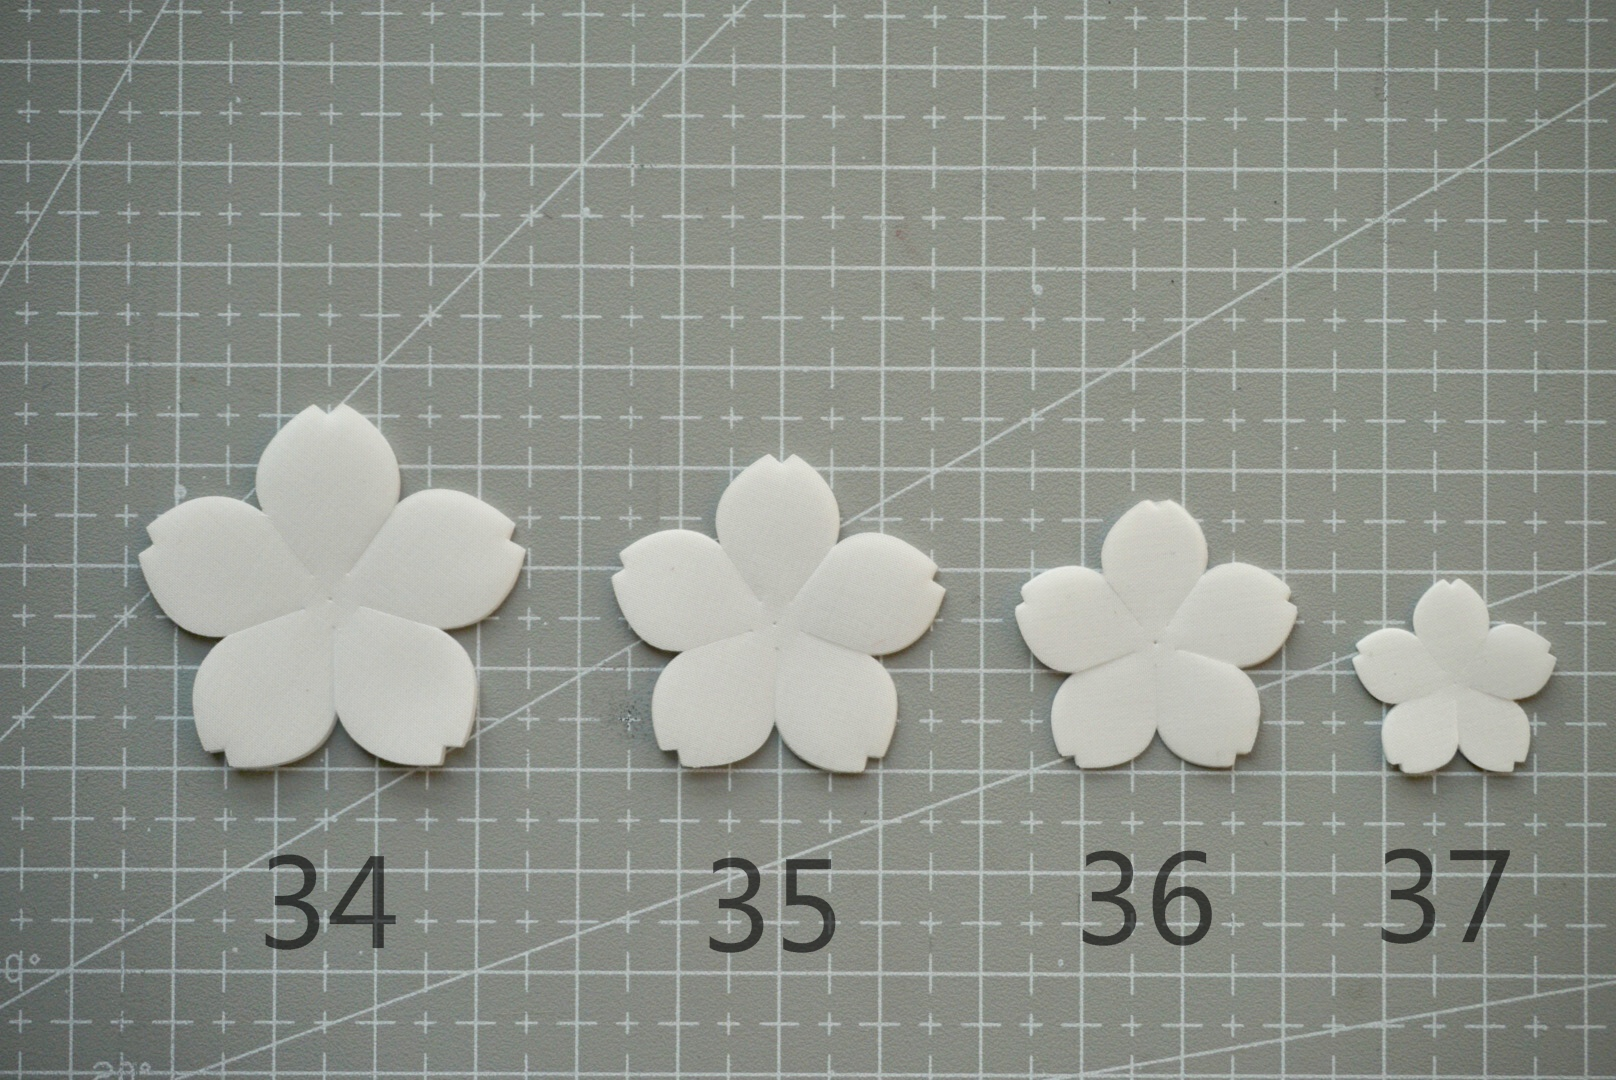 [immortals make flowers] - Cherry Blossom make flowers and scald cloth flower slice